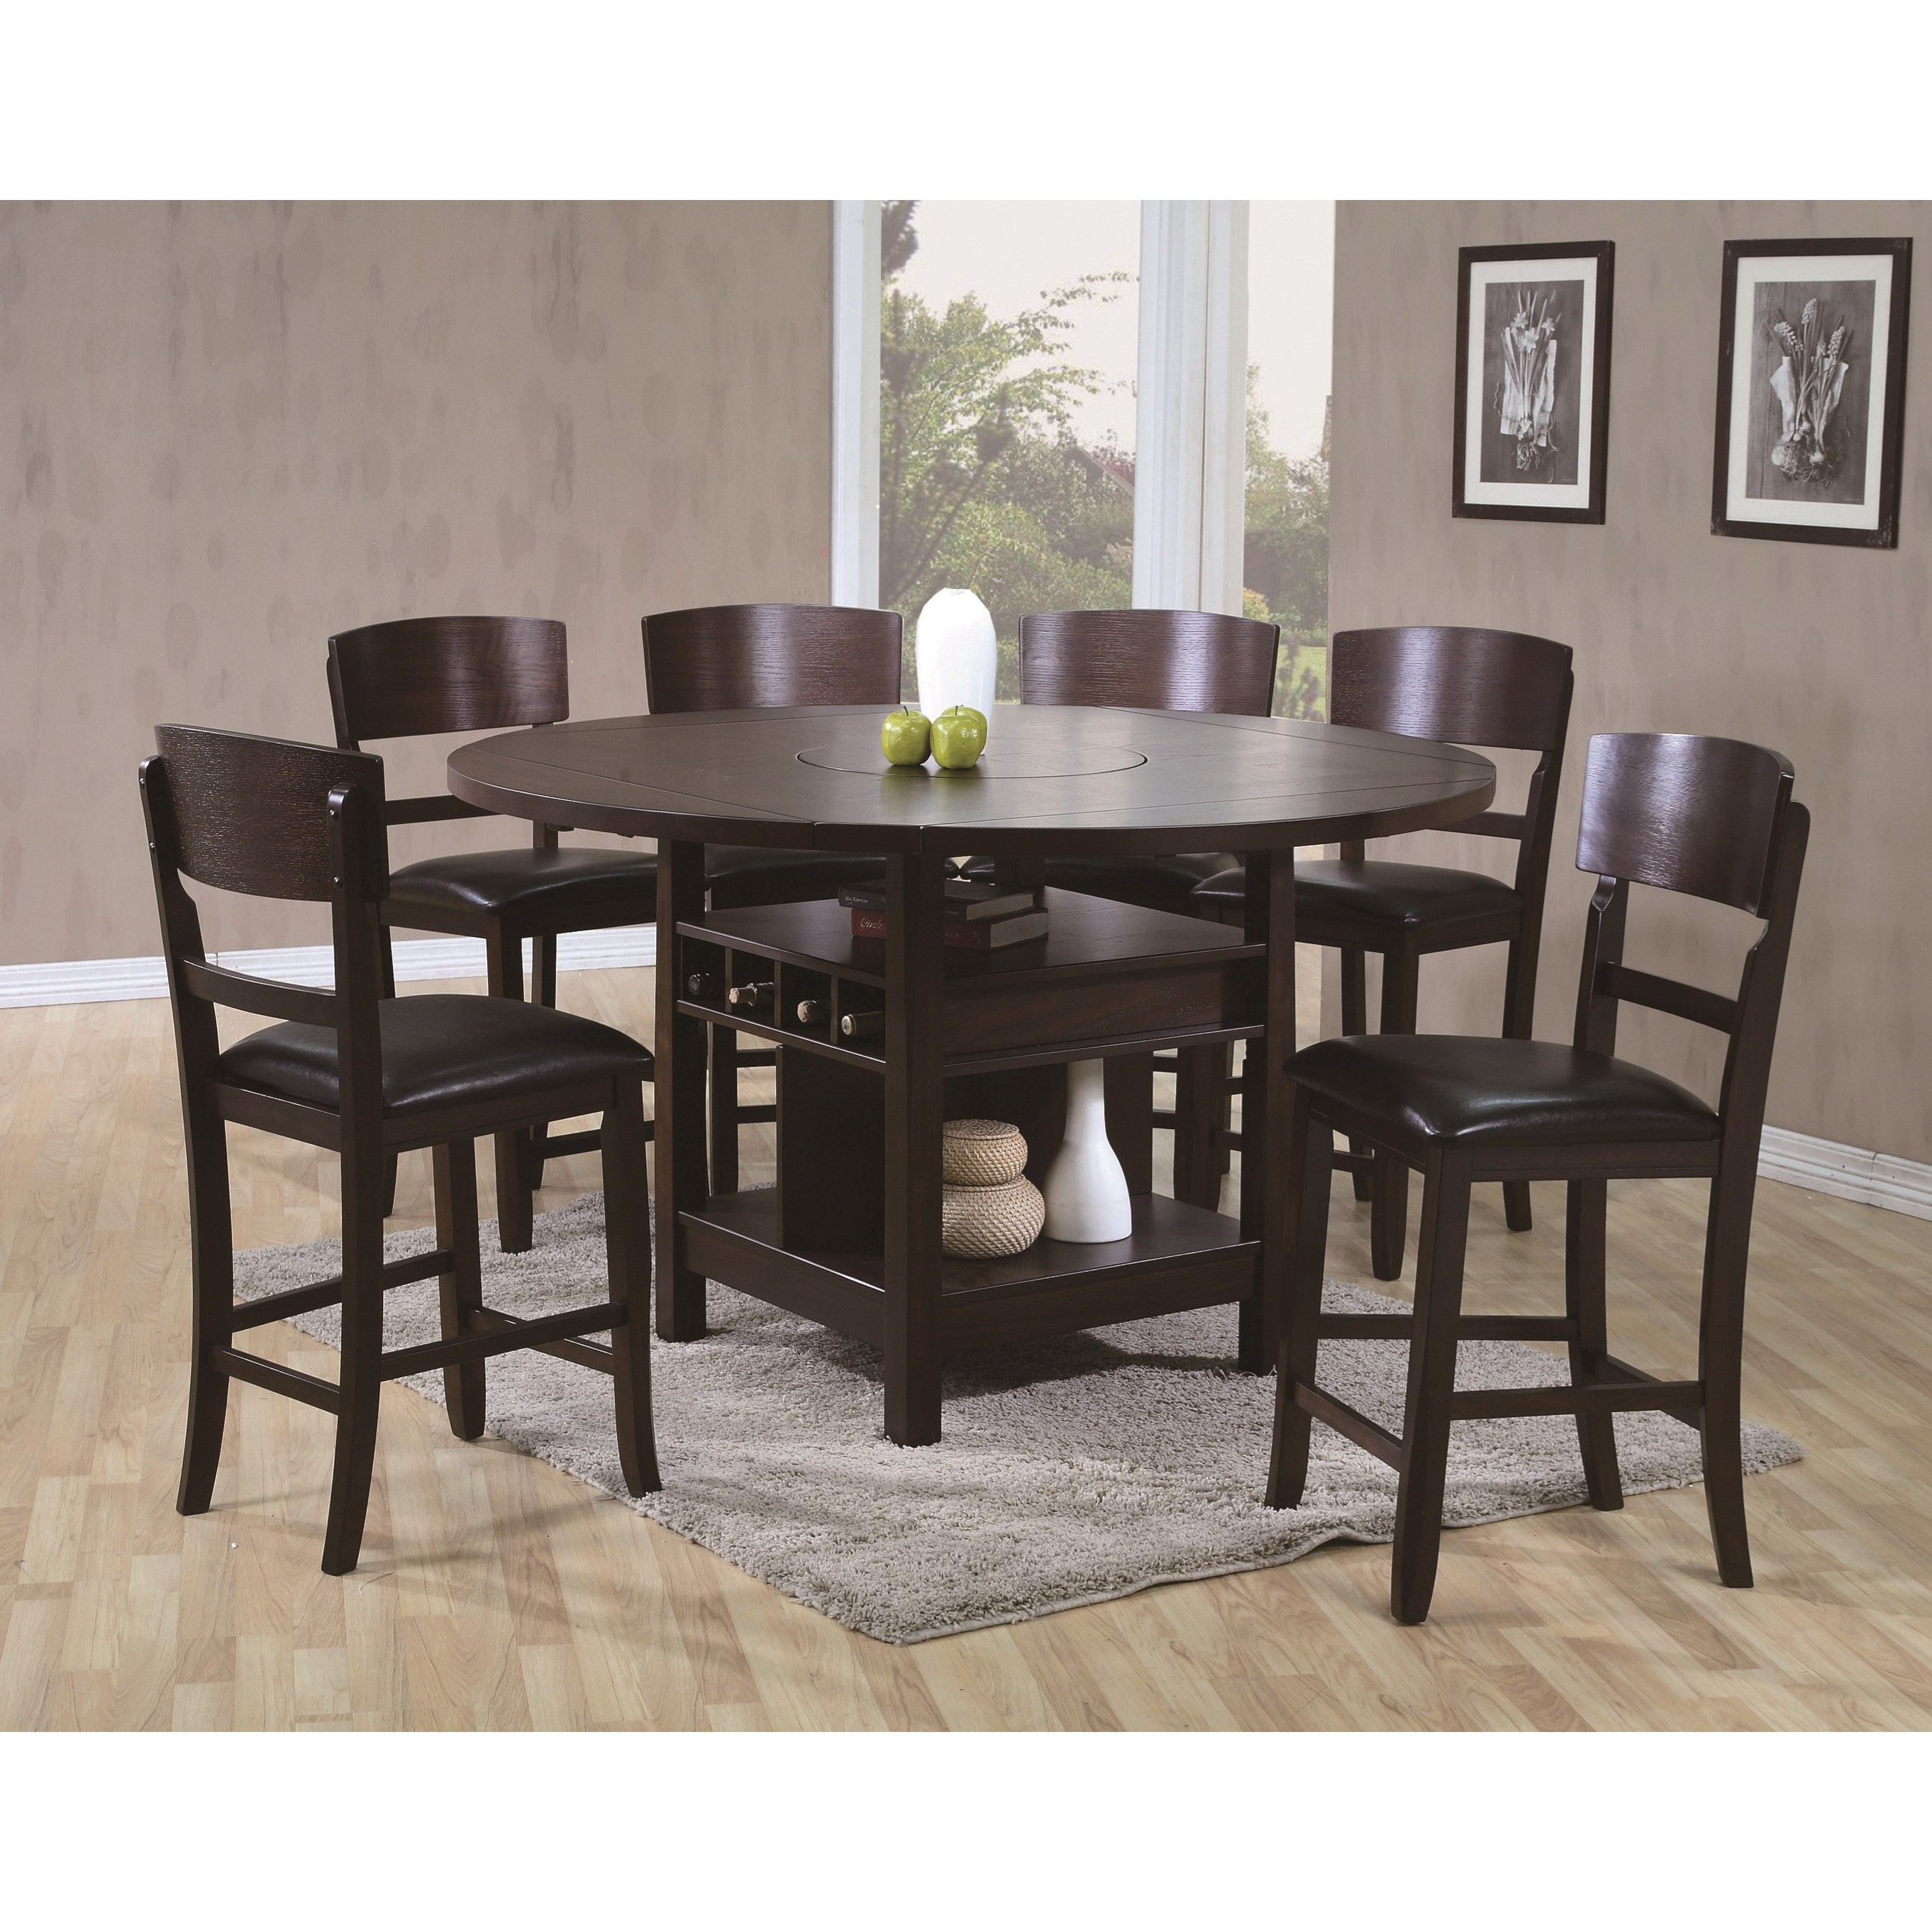 Conner  7 Piece Table and Chair Set by Crown Mark at Furniture Fair - North Carolina